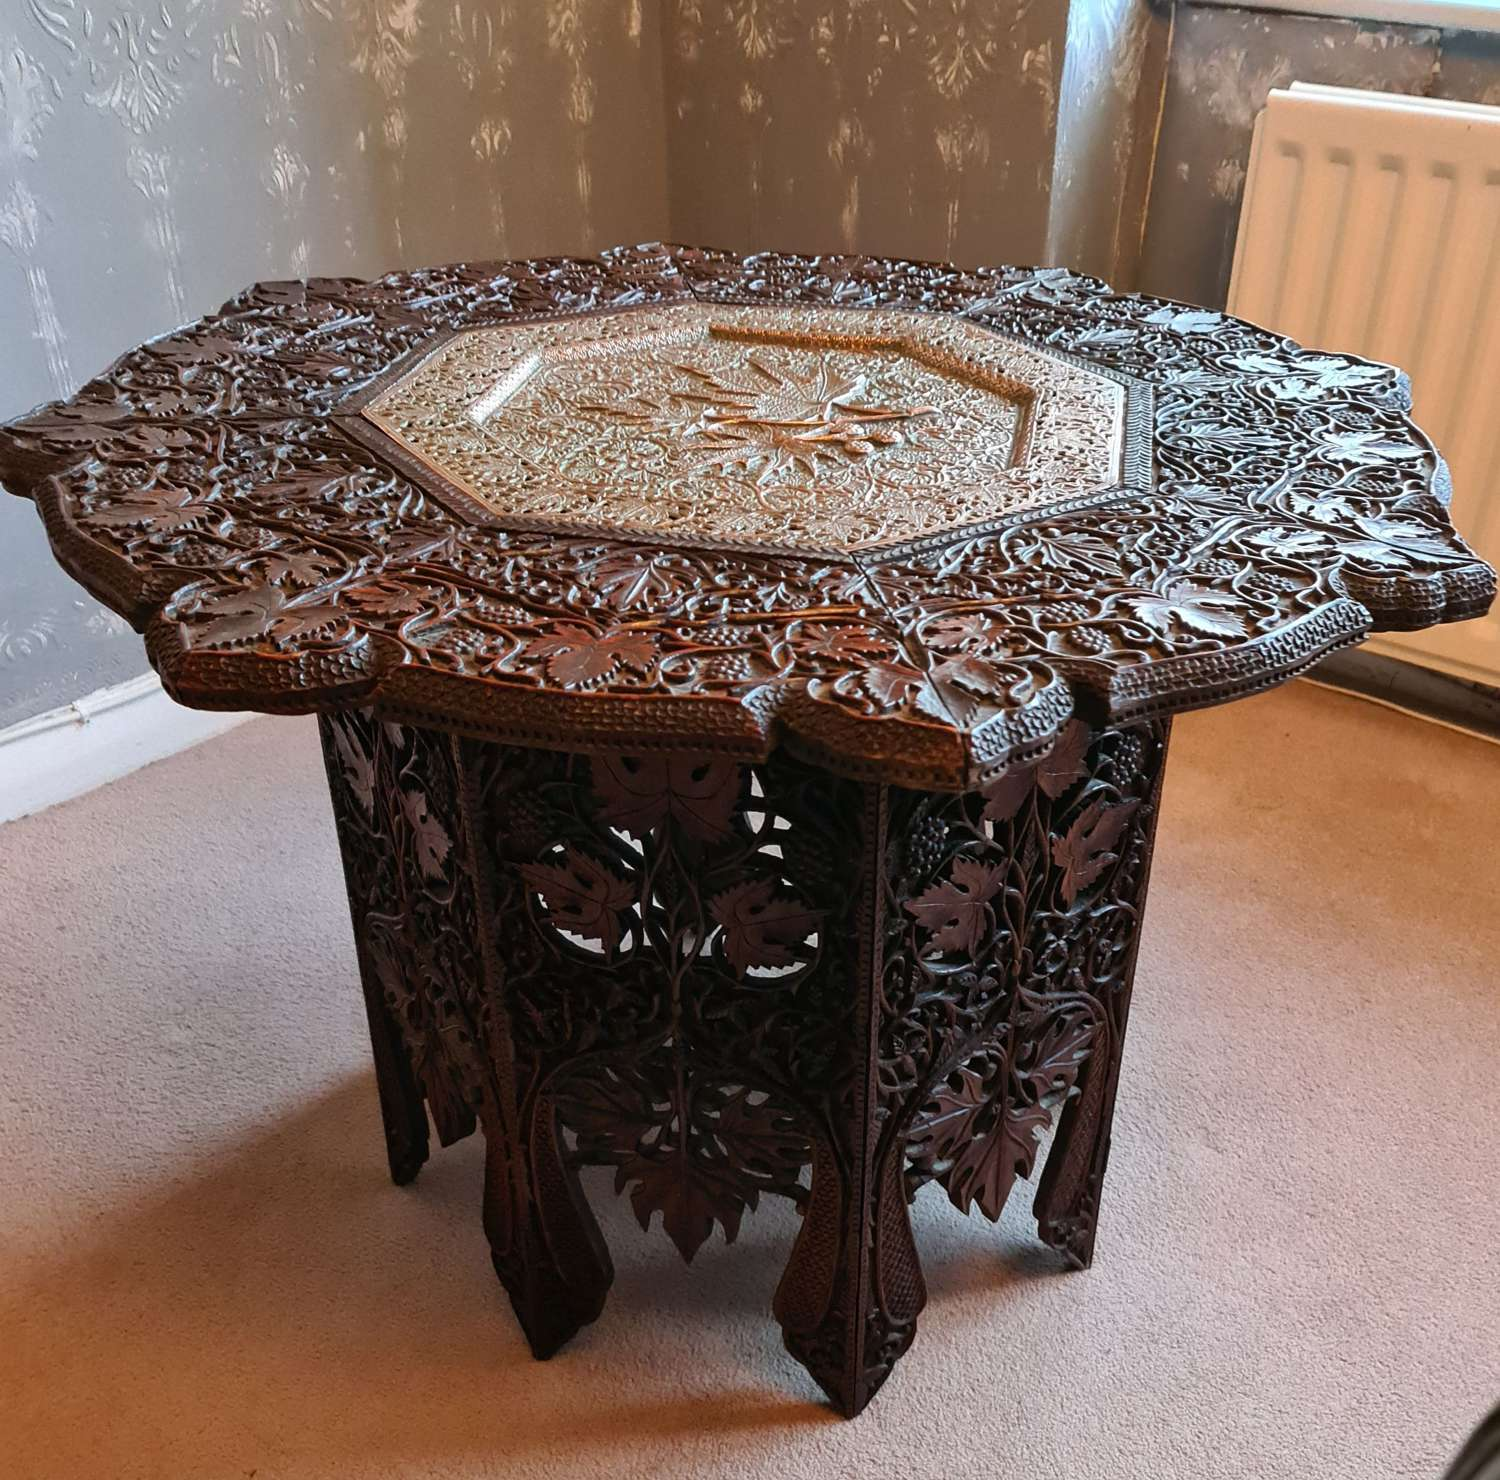 Beautifully carved Anglo-Indian Hardwood Table with Copper Insert